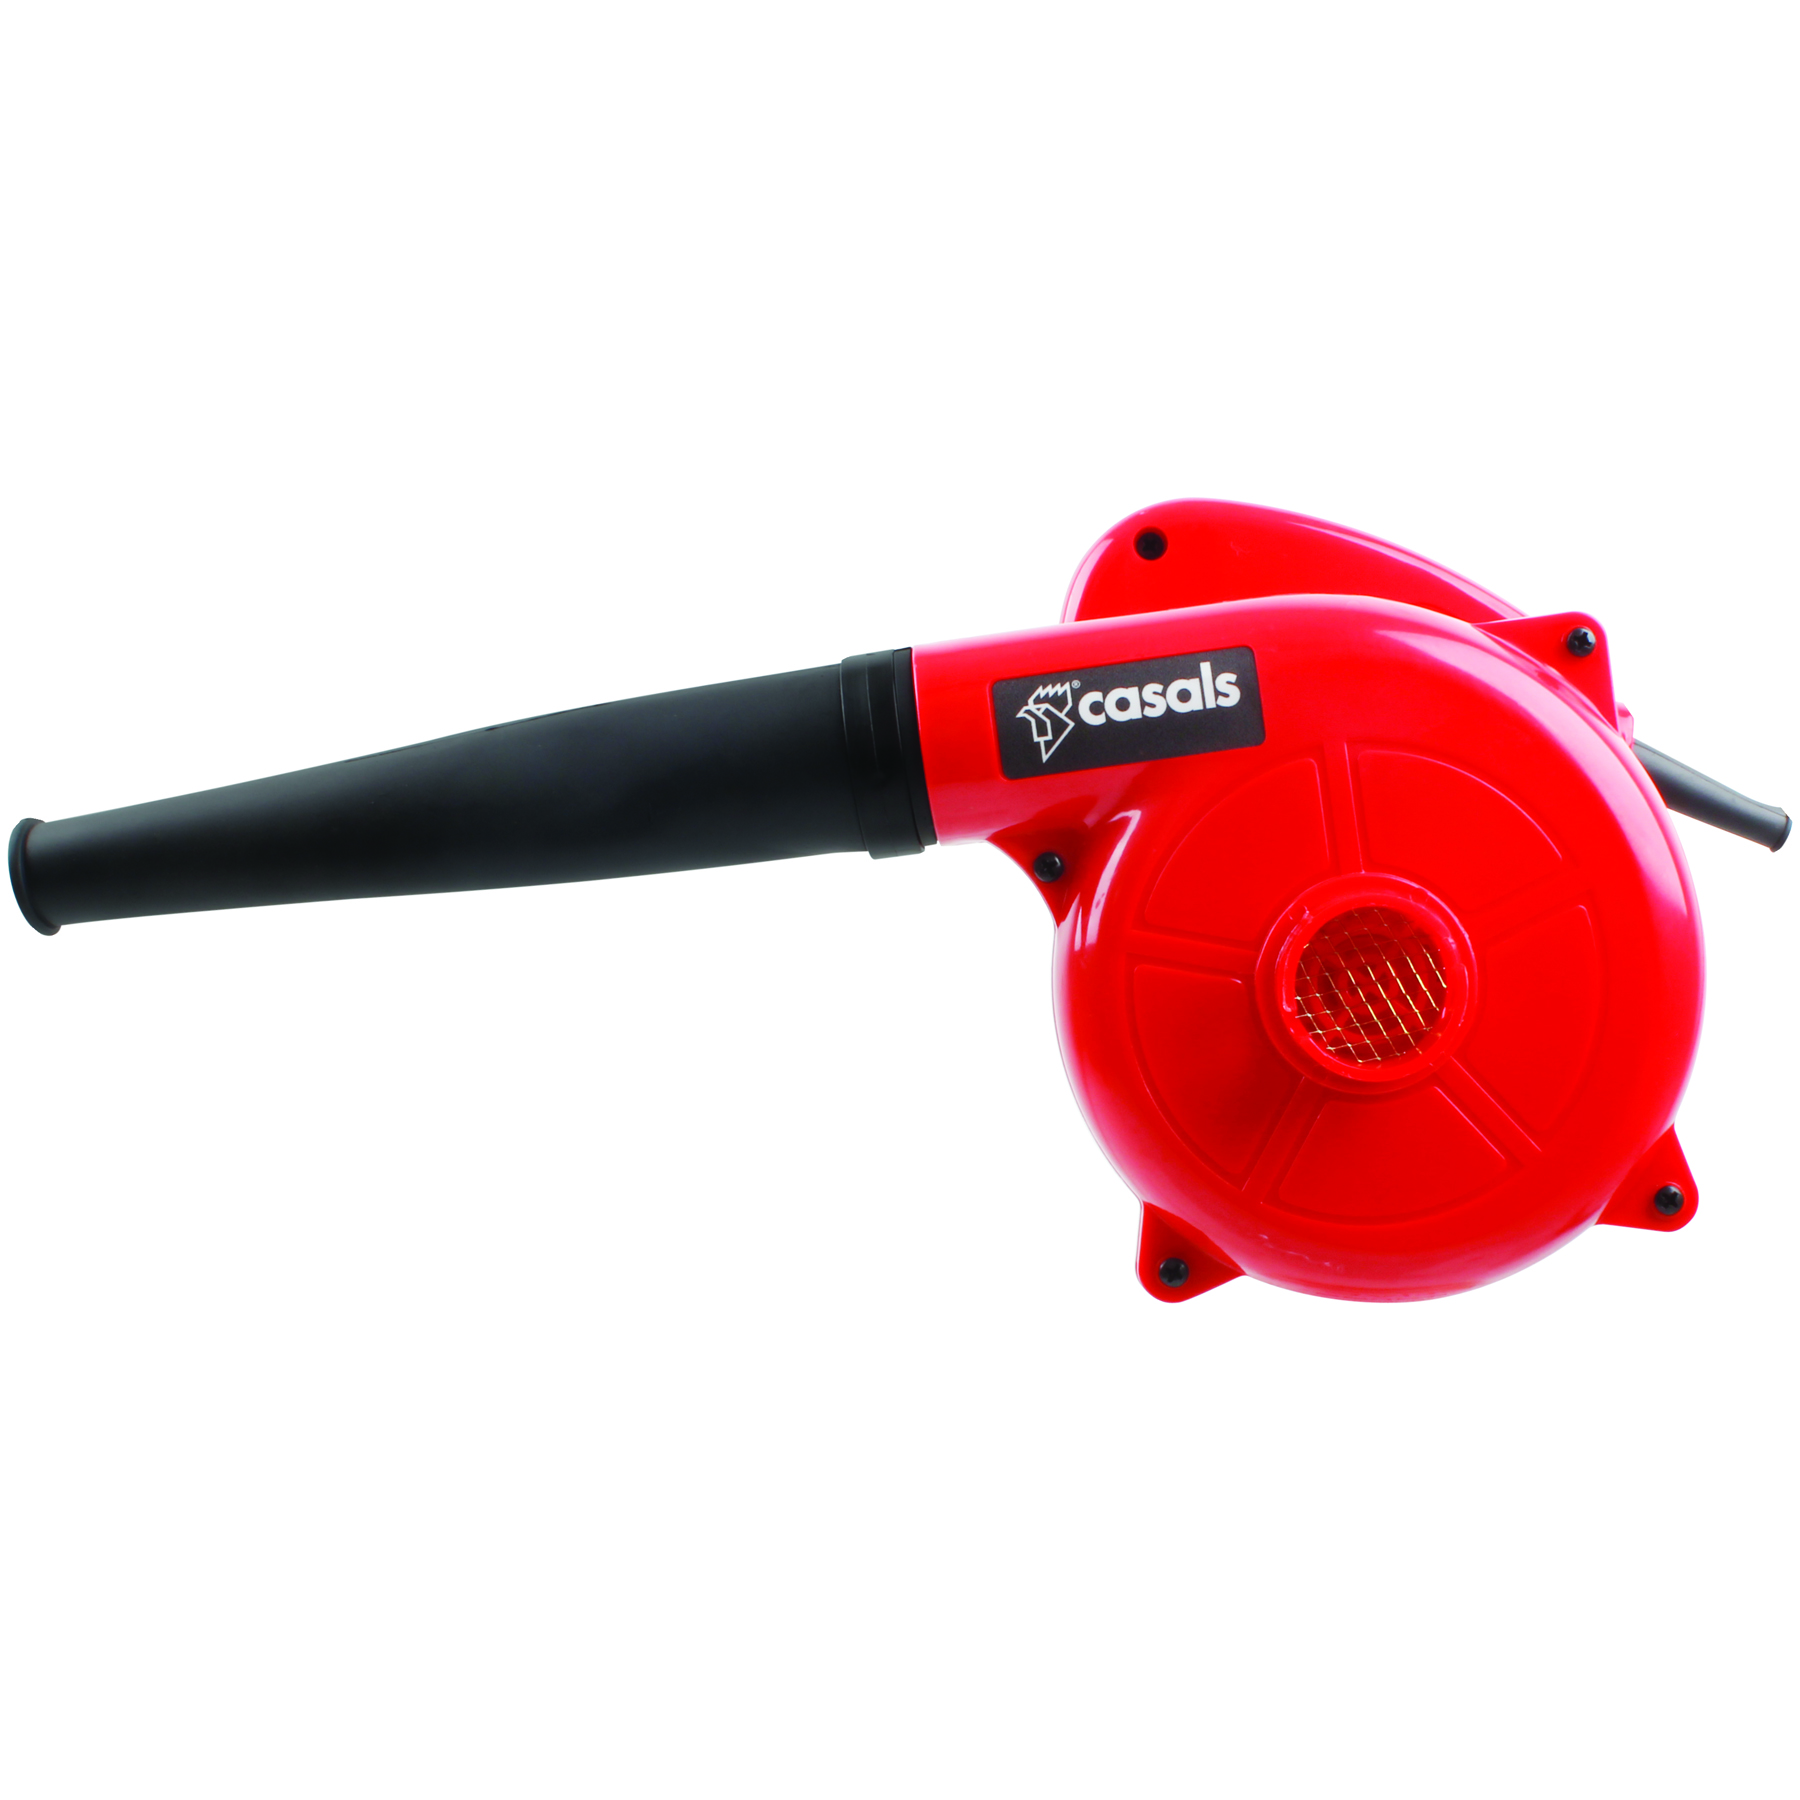 Casals Blower Electric Plastic Red 110km/h